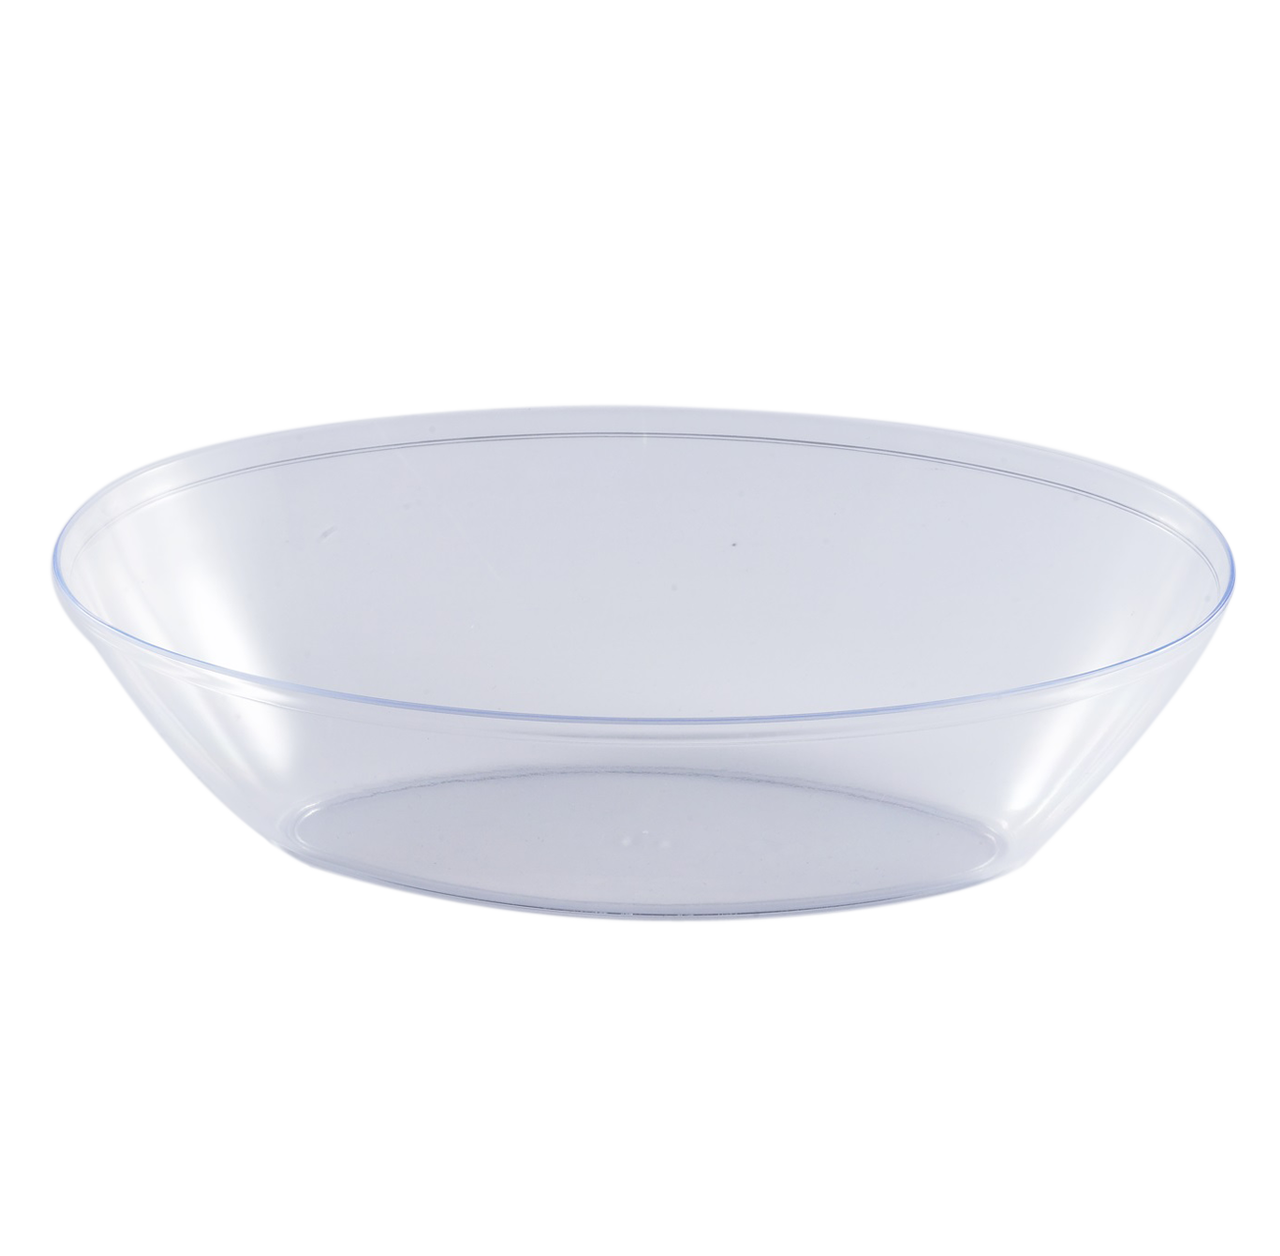 Clear transparent bowl. Oz oval serving the